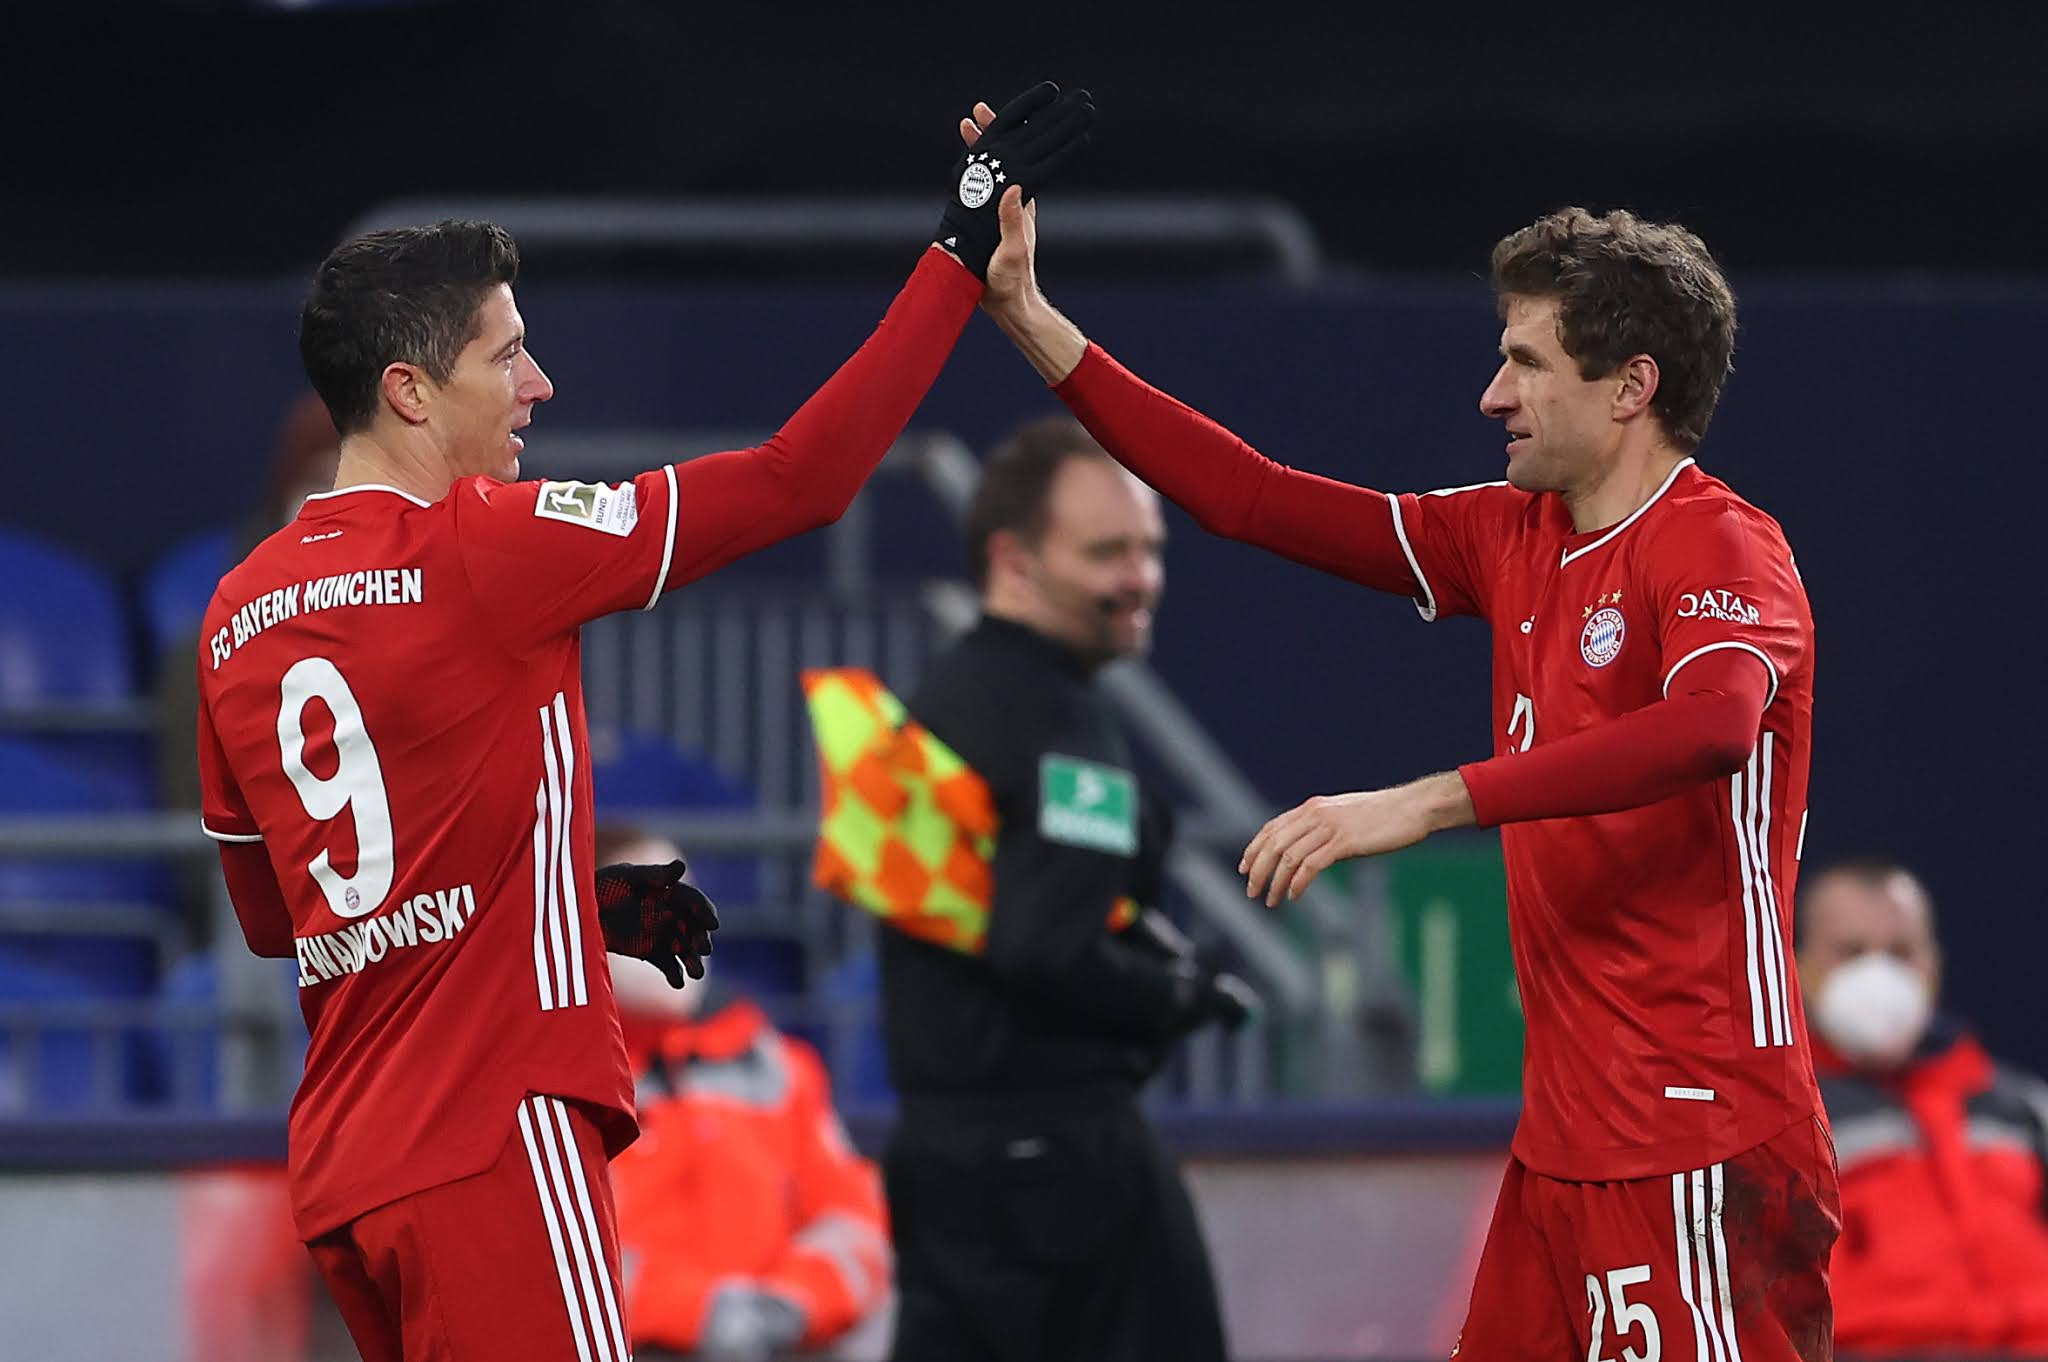 Bayern Munich will look to avenge their 4-1 defeat to Hoffenheim earlier this season